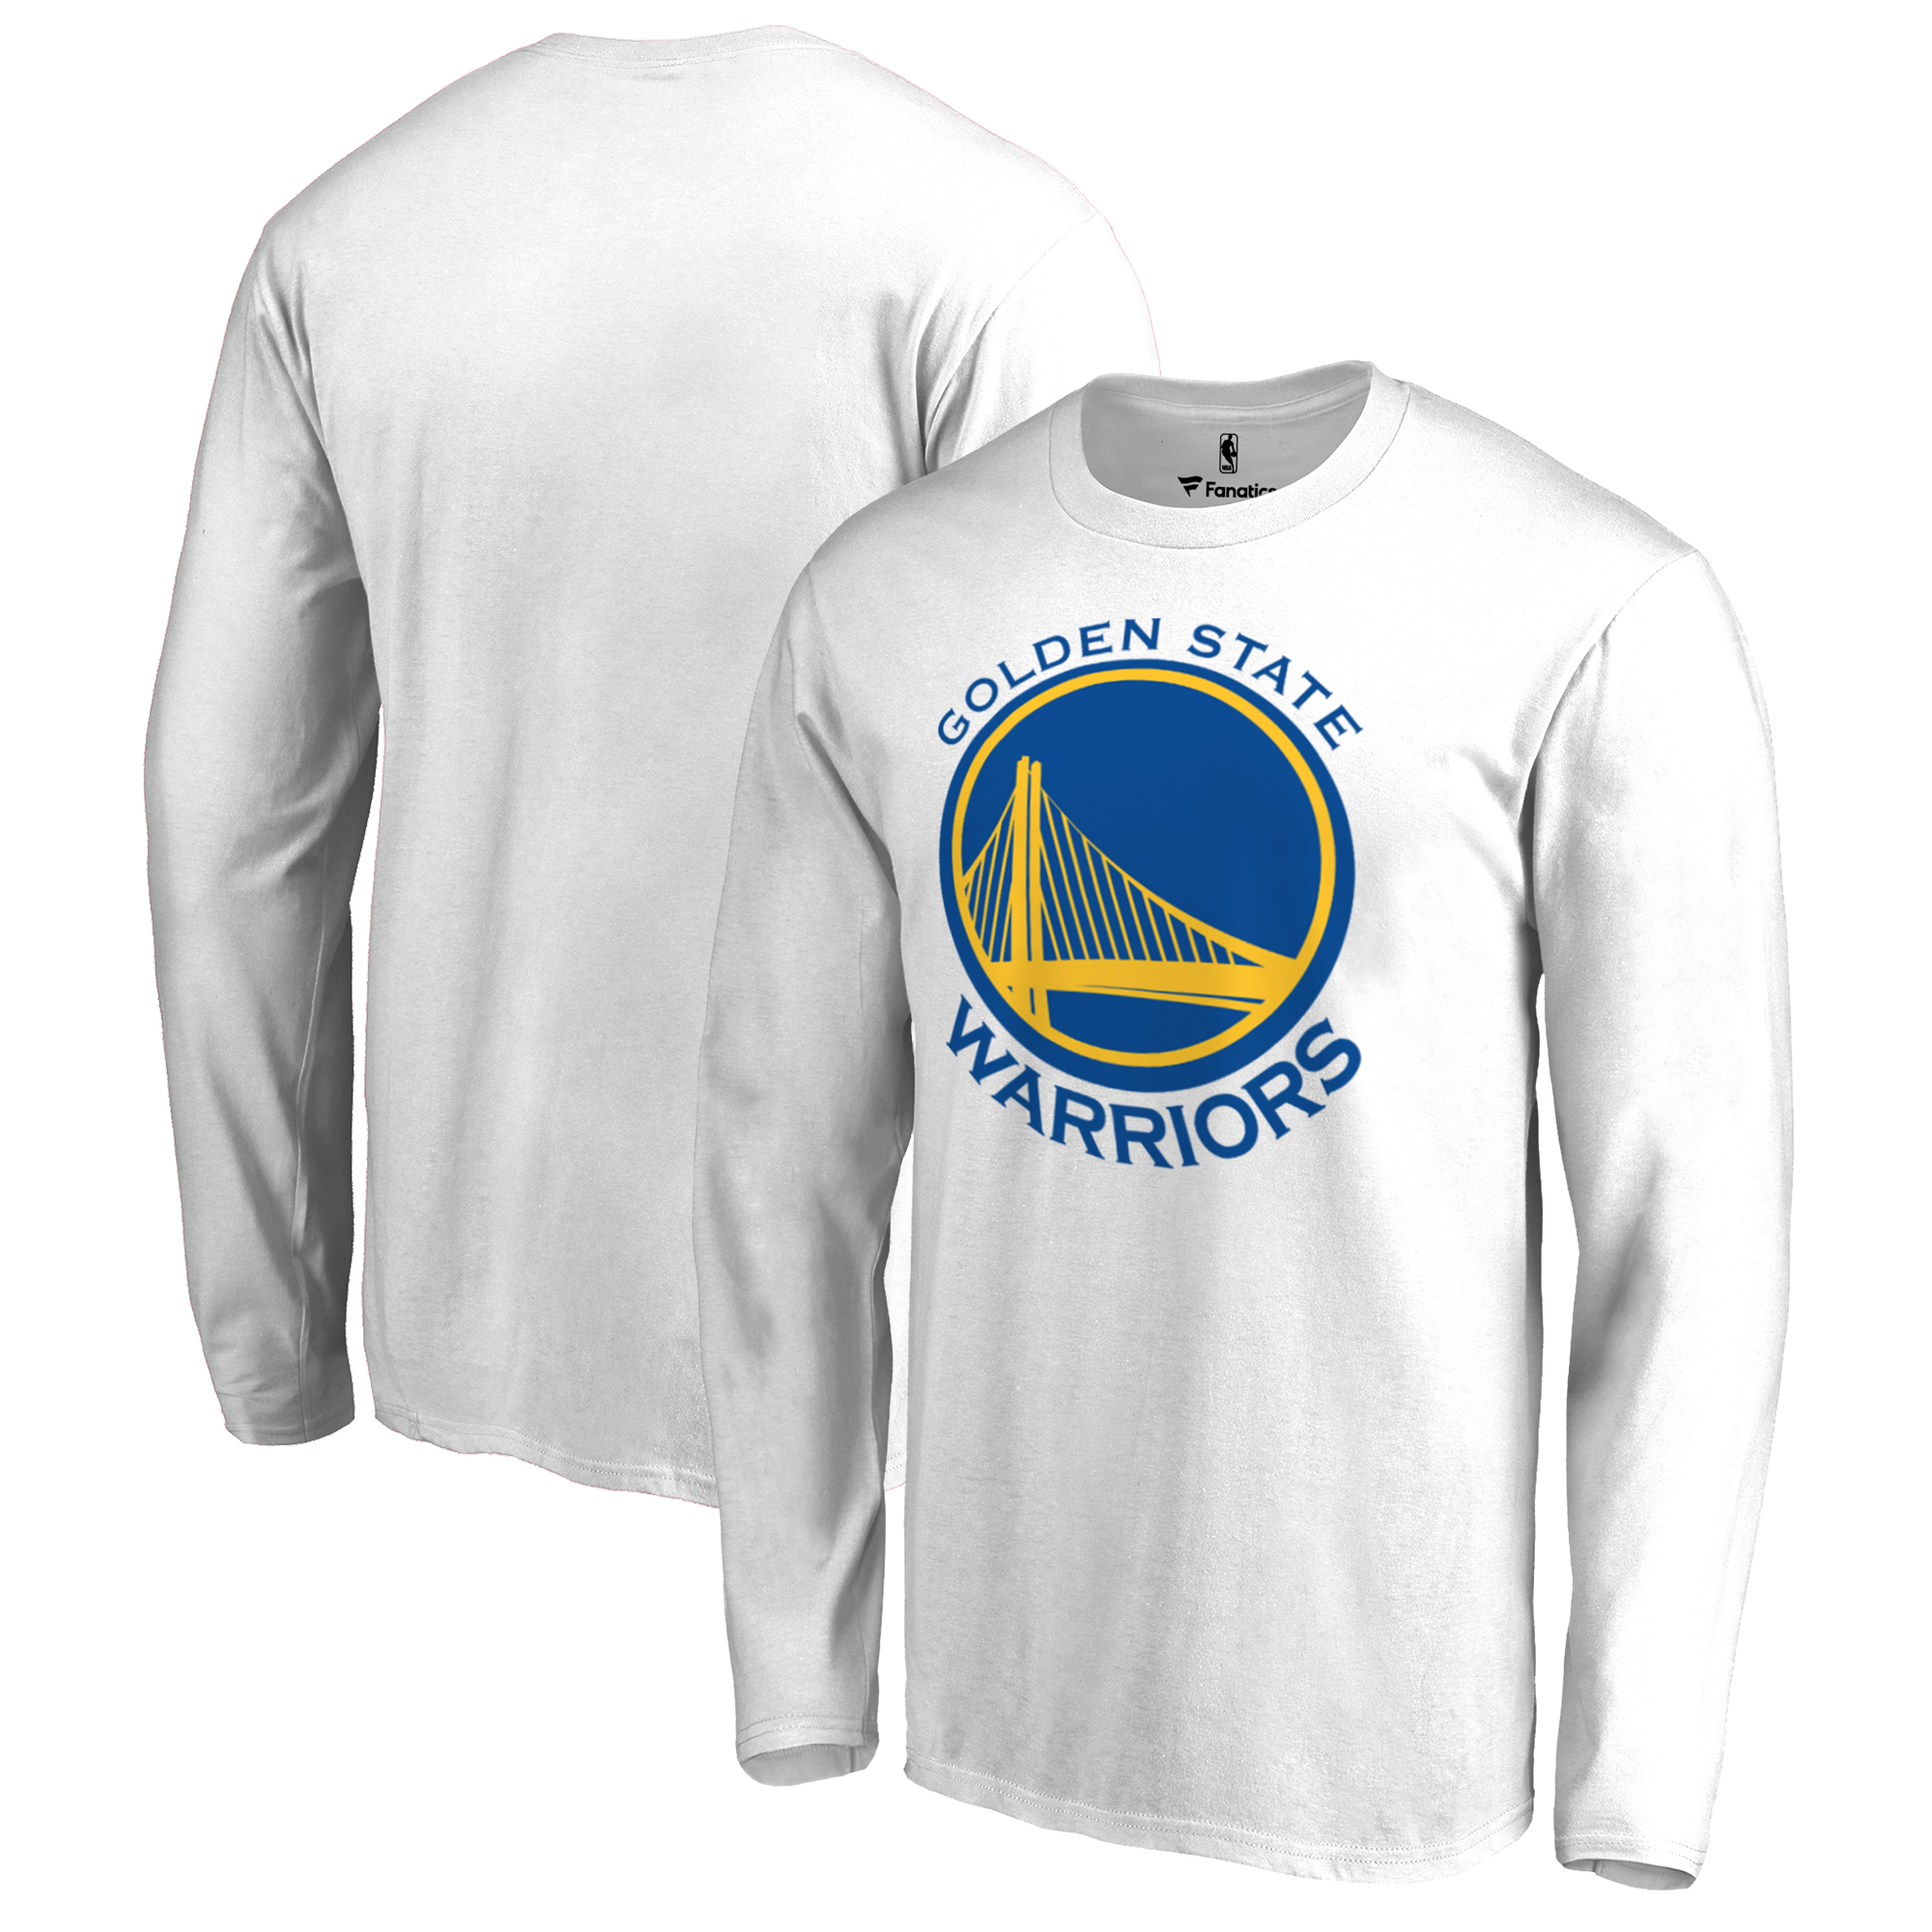 Golden State Warriors Fanatics Branded Big & Tall Team Primary Logo Long Sleeve T-Shirt - White